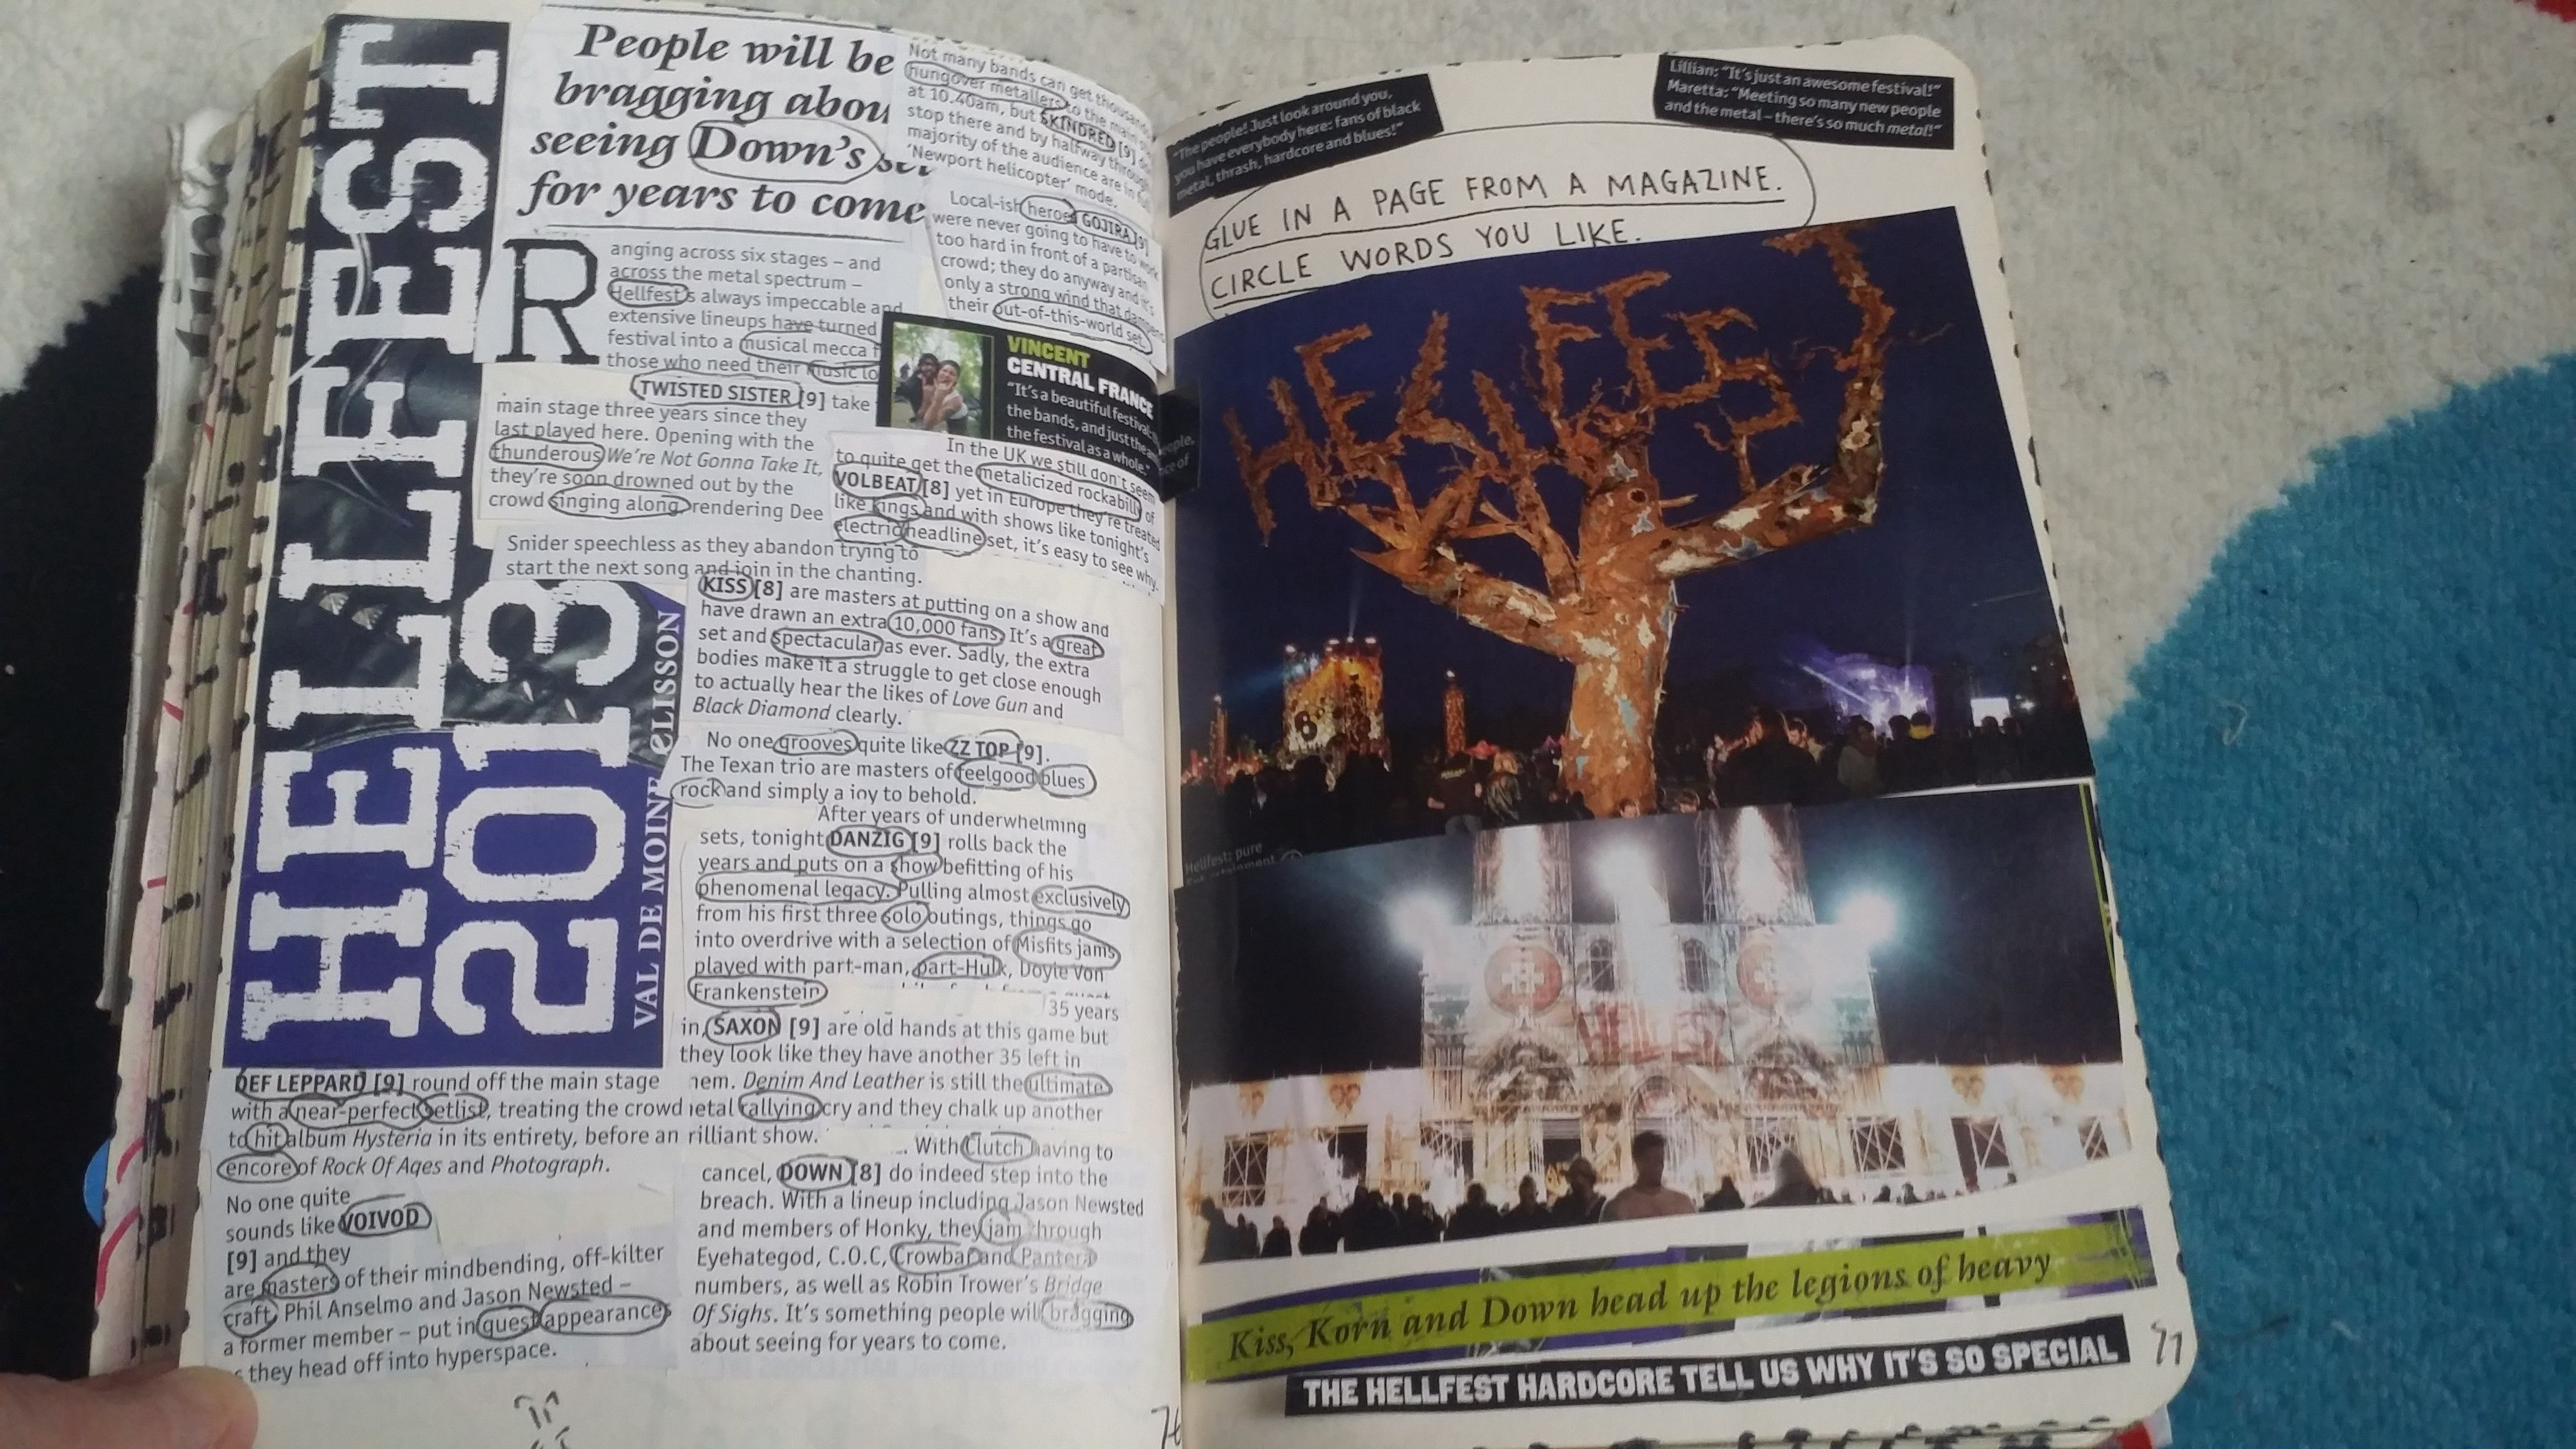 My Wreck This Journal - Magazine Page #kerismith #wreckthisjournal #thisisnotabook